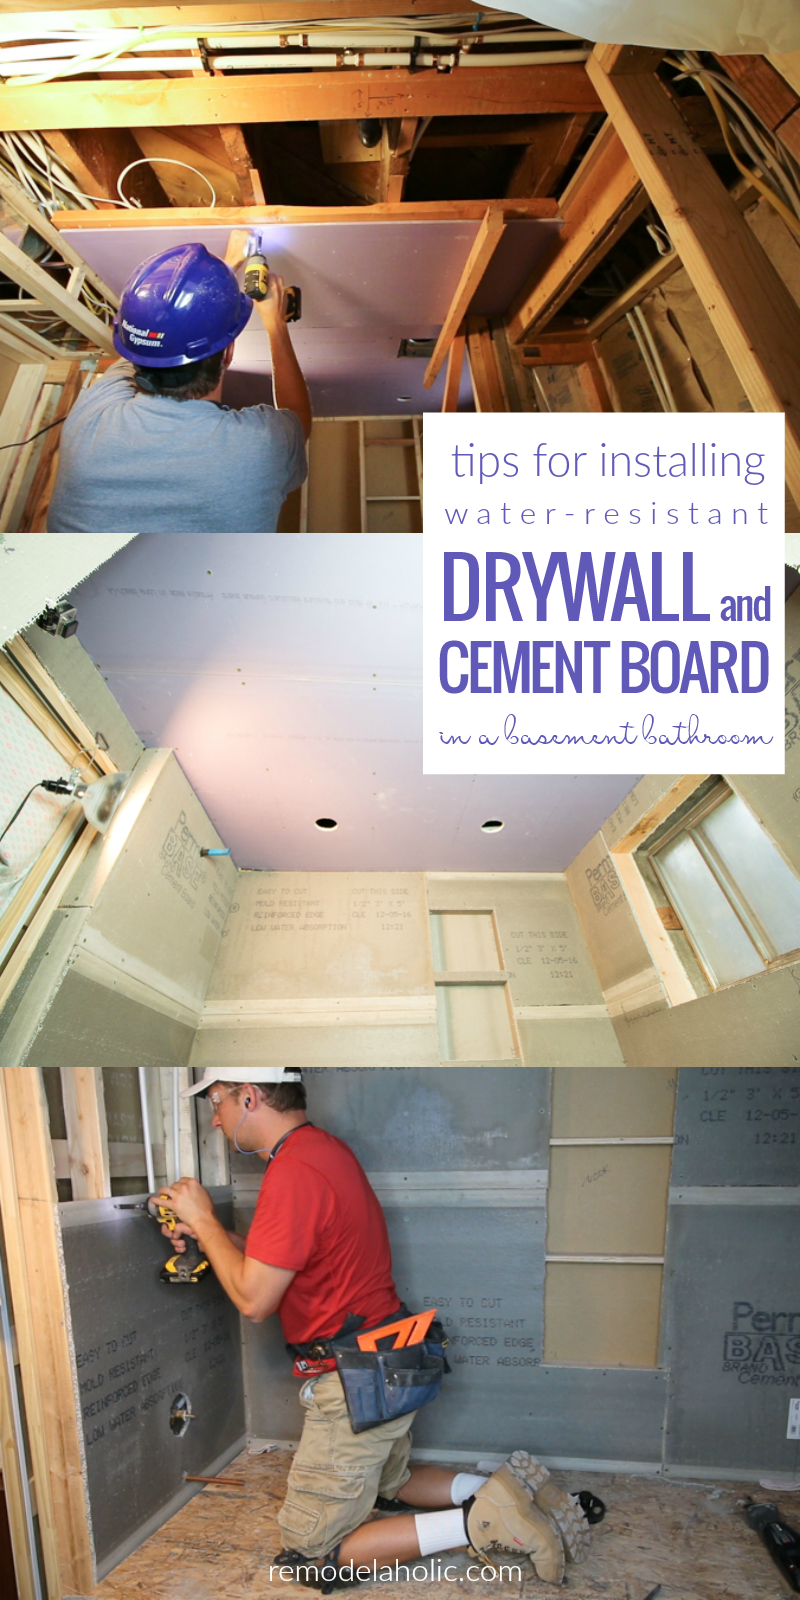 Water Resistant Drywall : Remodelaholic basement bathroom drywall and cement board